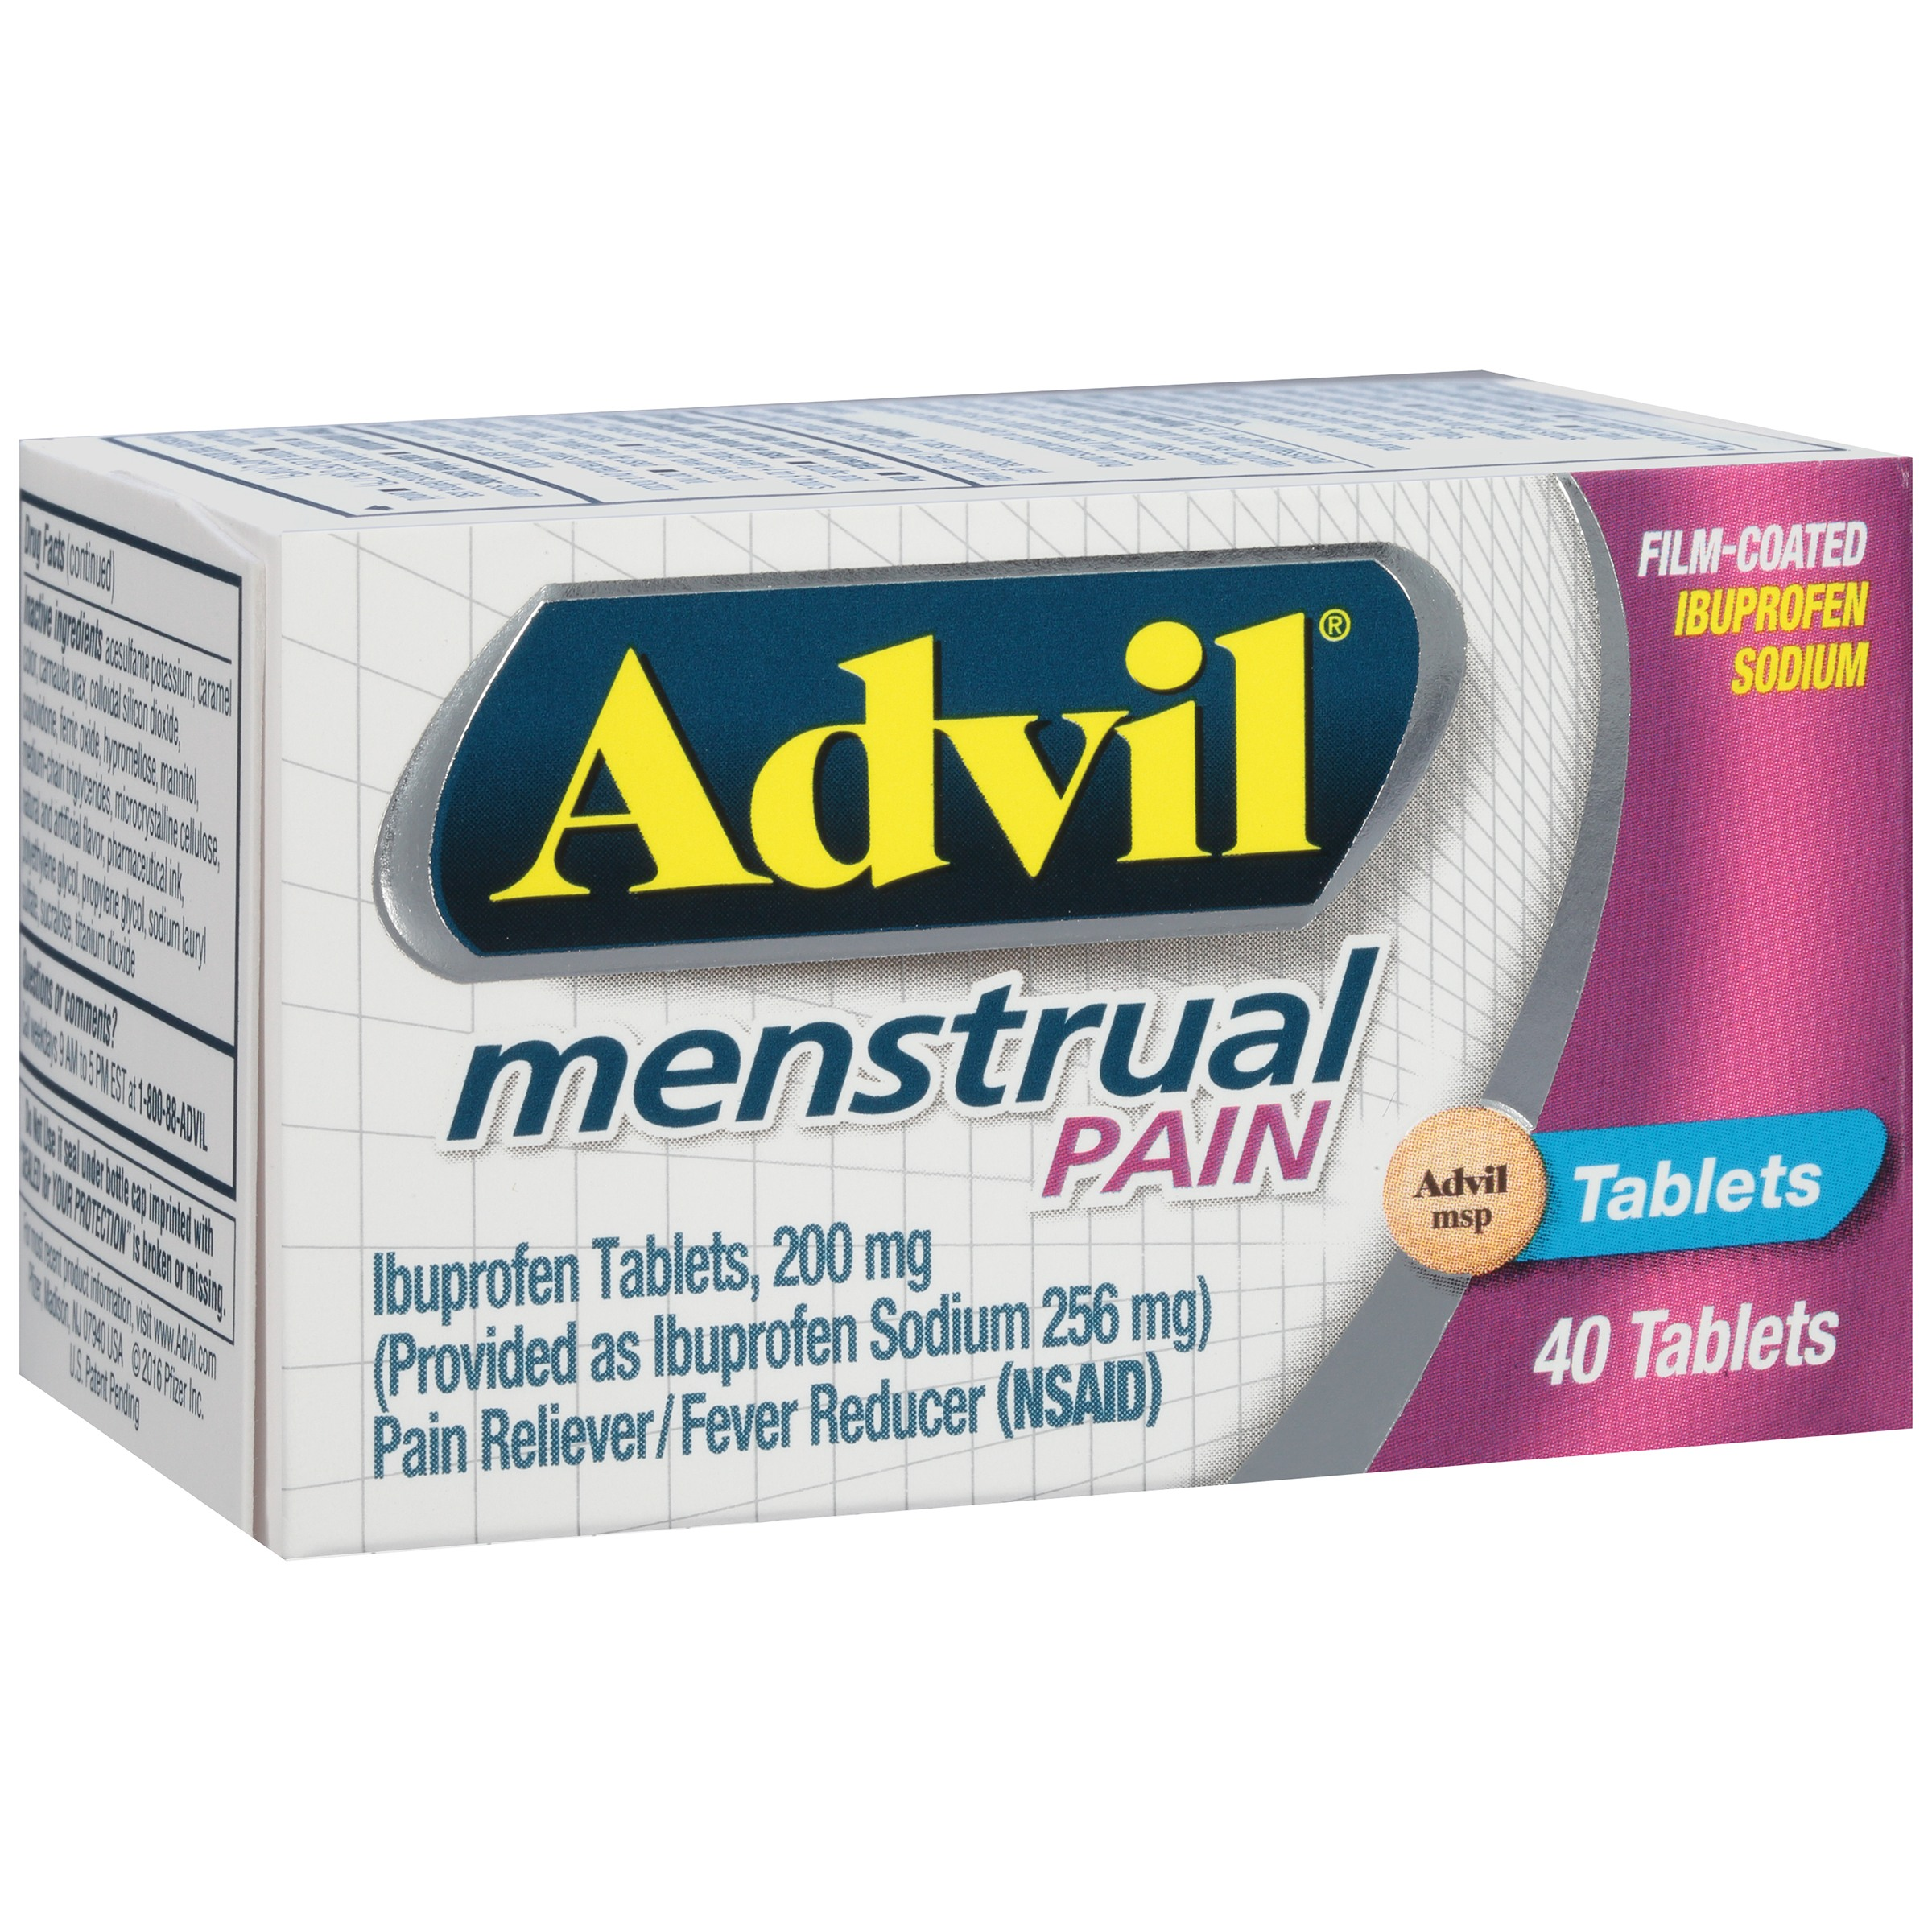 Advil Menstrual (40 Count) Pain Reliever / Fever Reducer ...